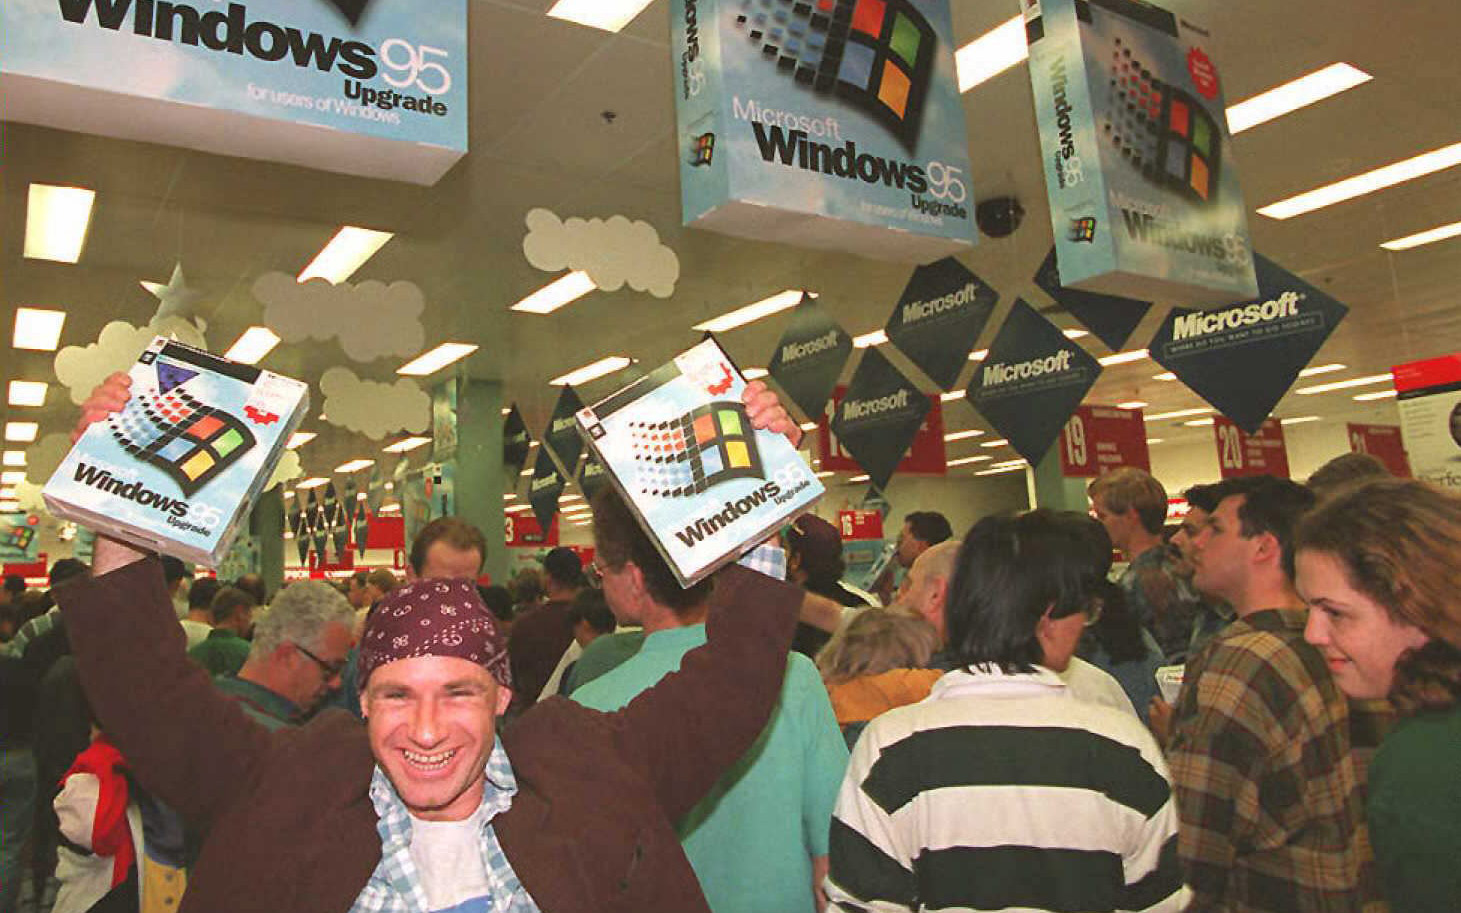 Windows 95 customer Mikol Furneaux waves two boxes in the air